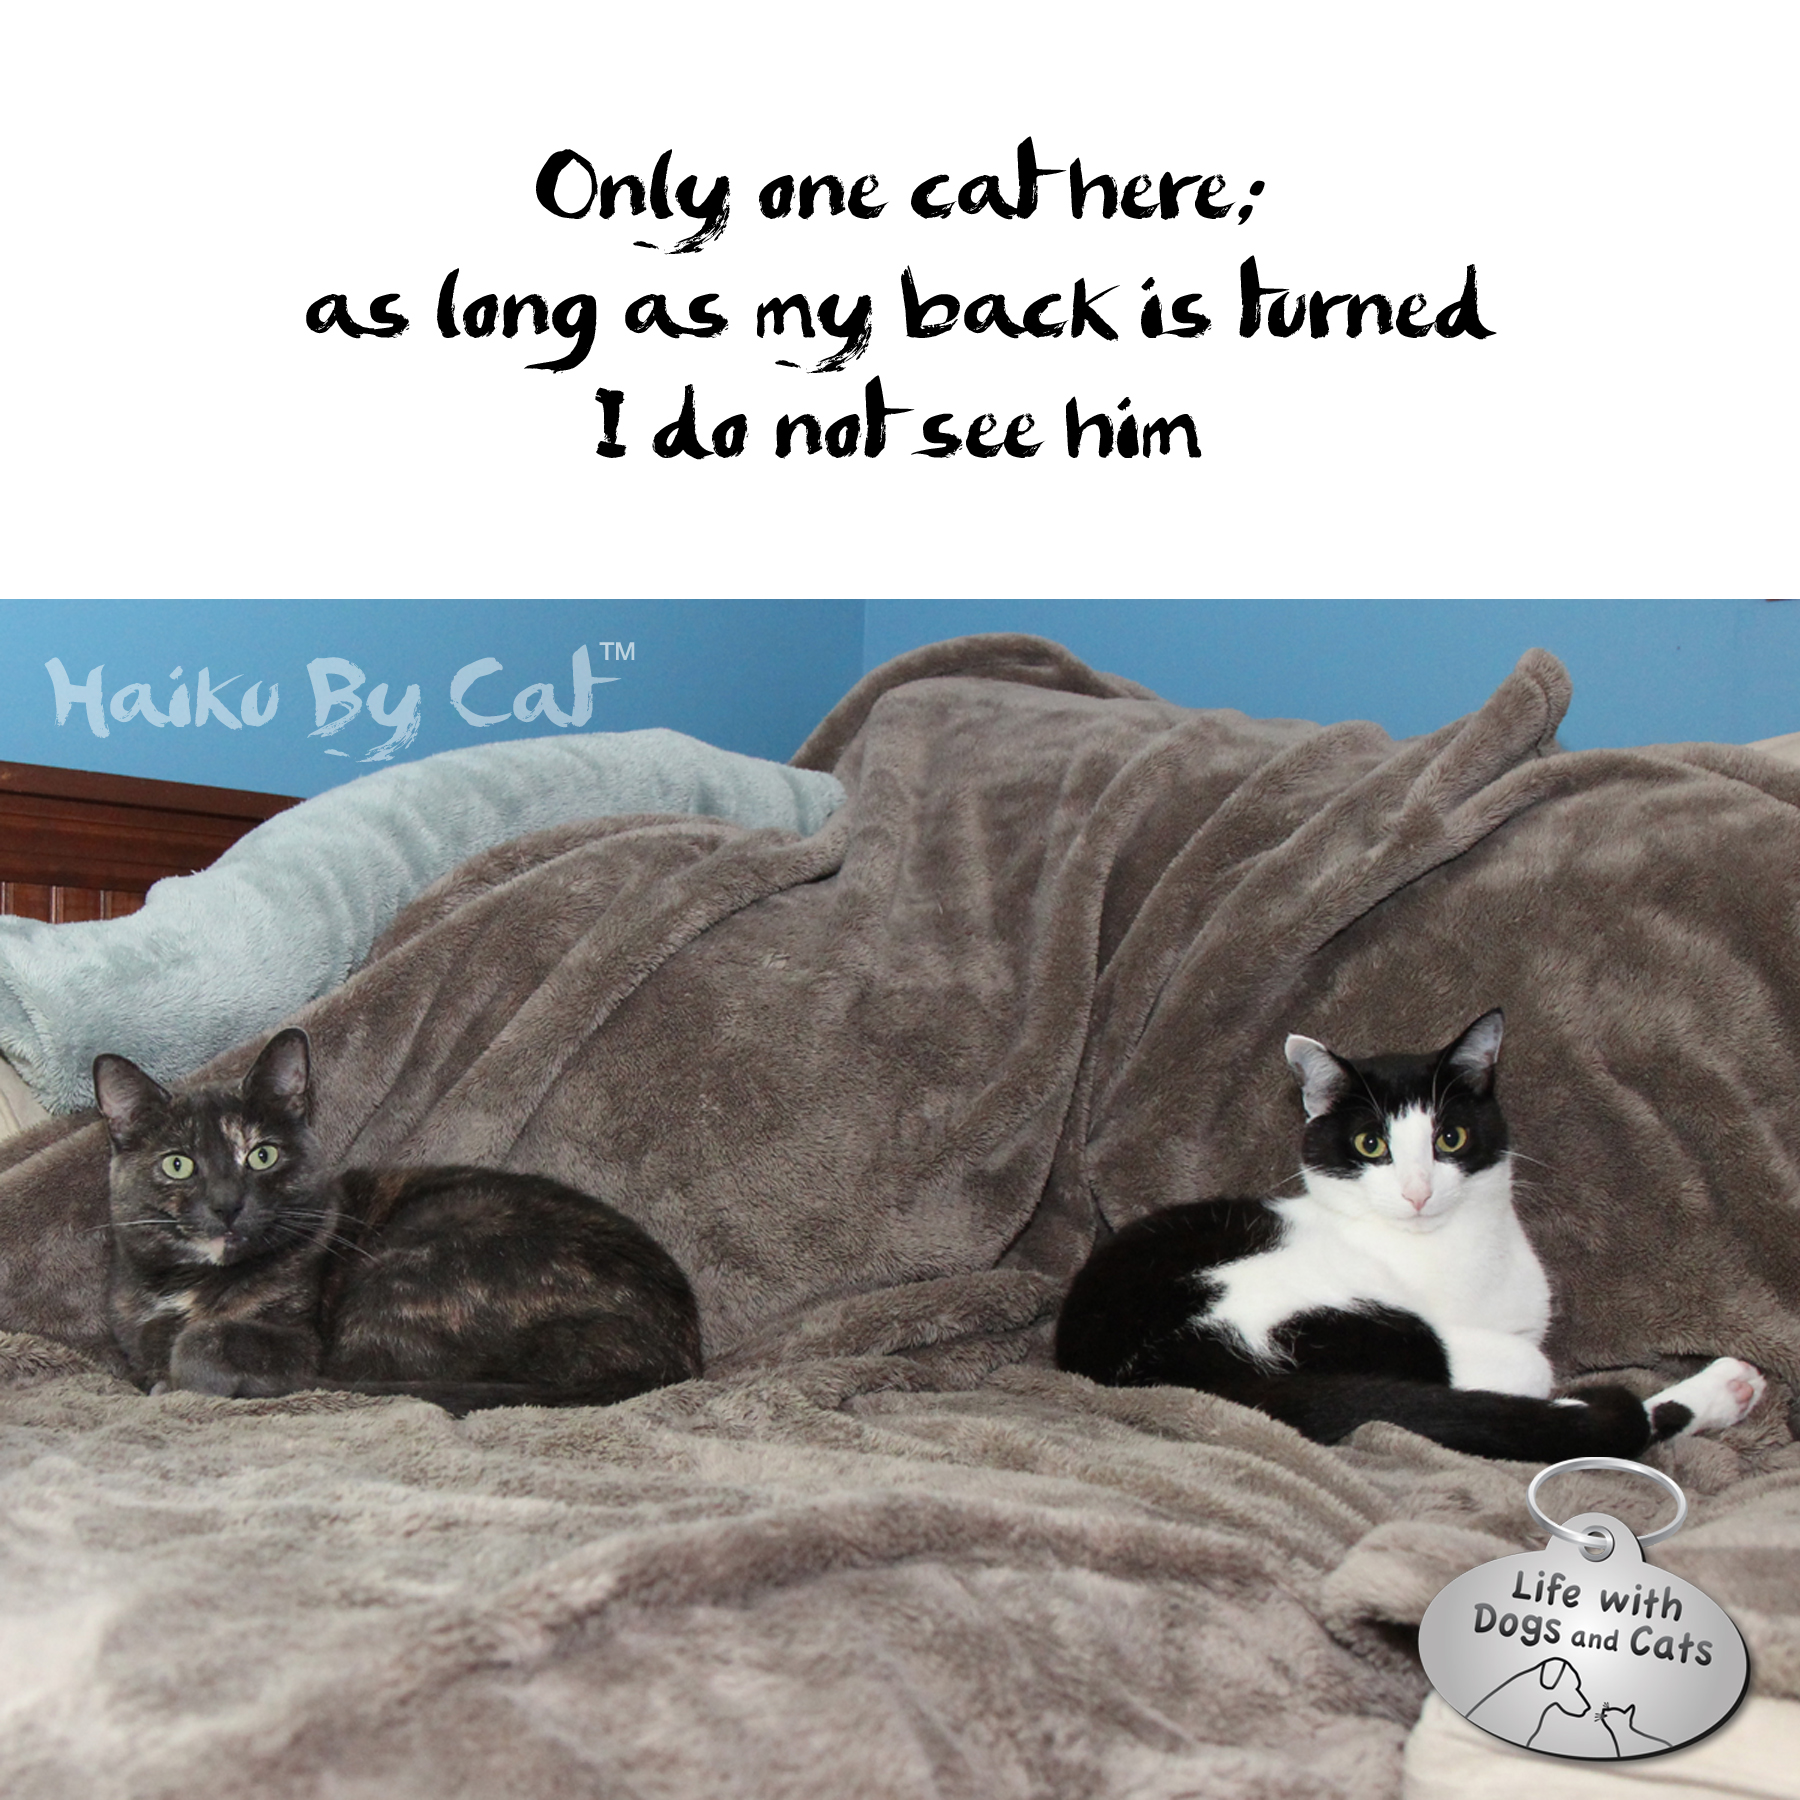 Idyllic Haiku By Cat Life Dogs Blog Dogs Movie Life Haiku By Only One Cat As Long As My Back Is Turned Calvin Archives Page bark post Life With Dogs